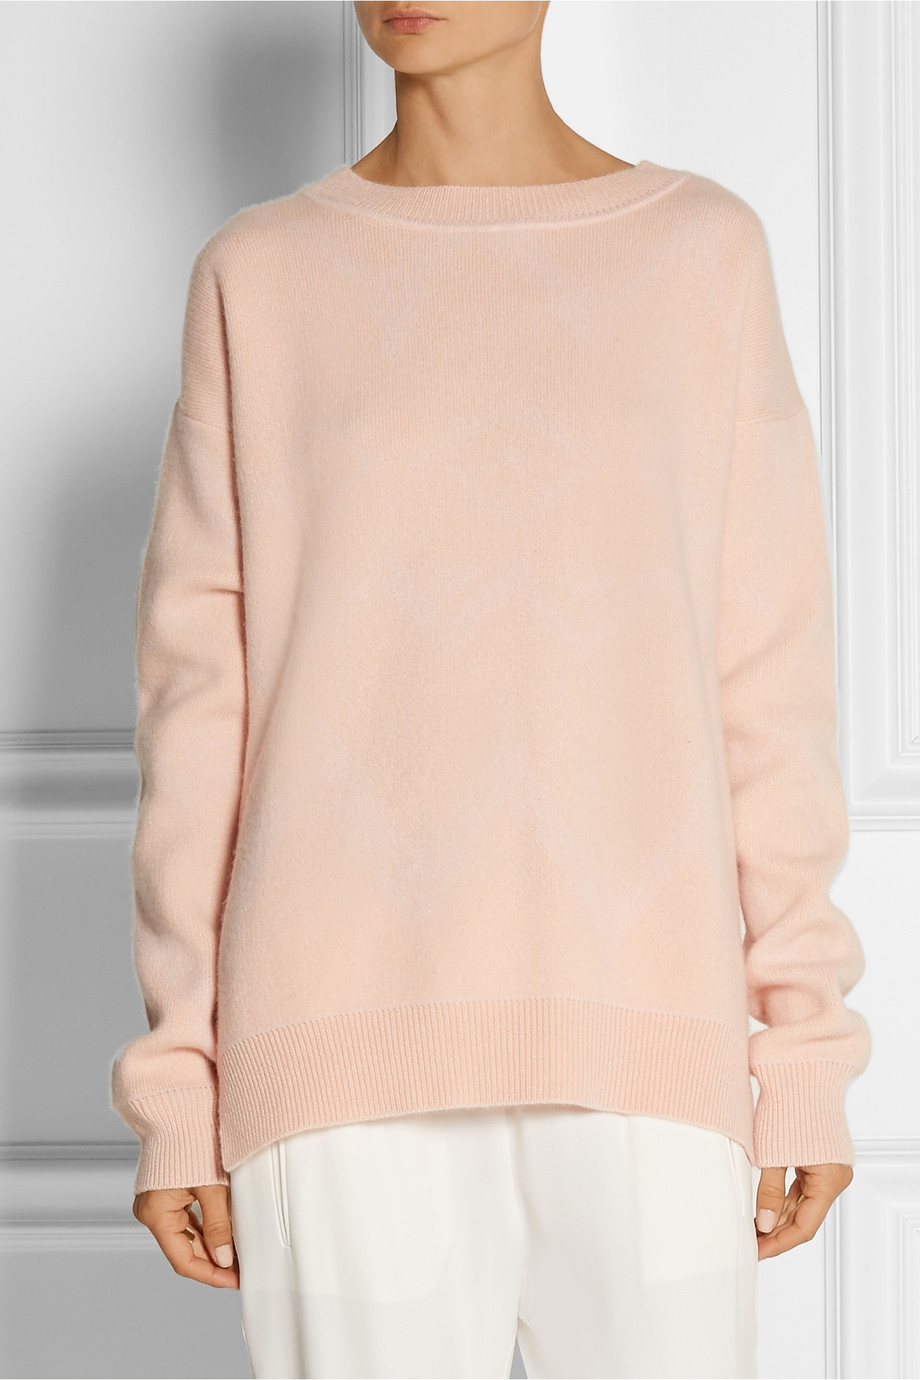 Baja east Oversized Printed Cashmere Sweater in Pink | Lyst